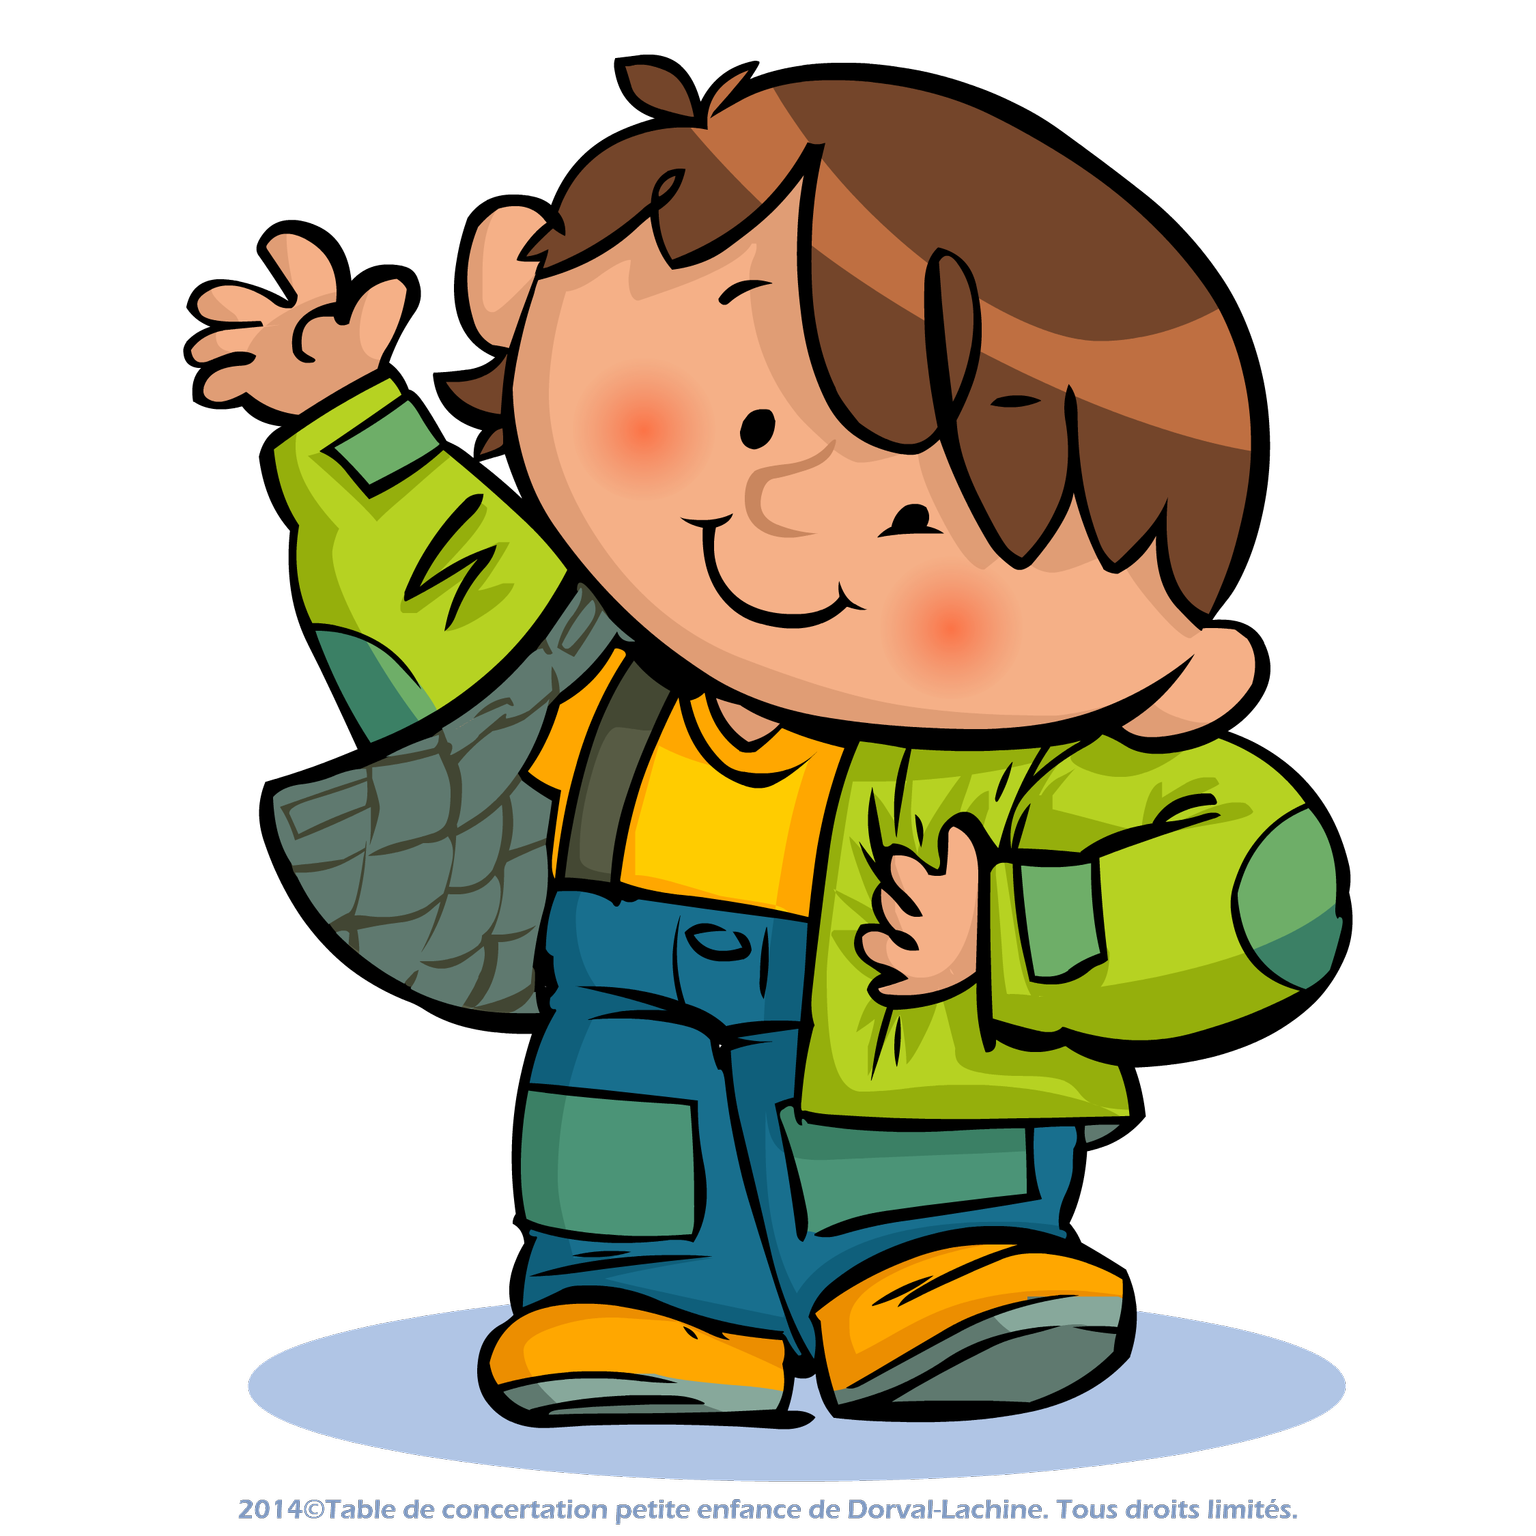 habillage hiver png. Fingers clipart table